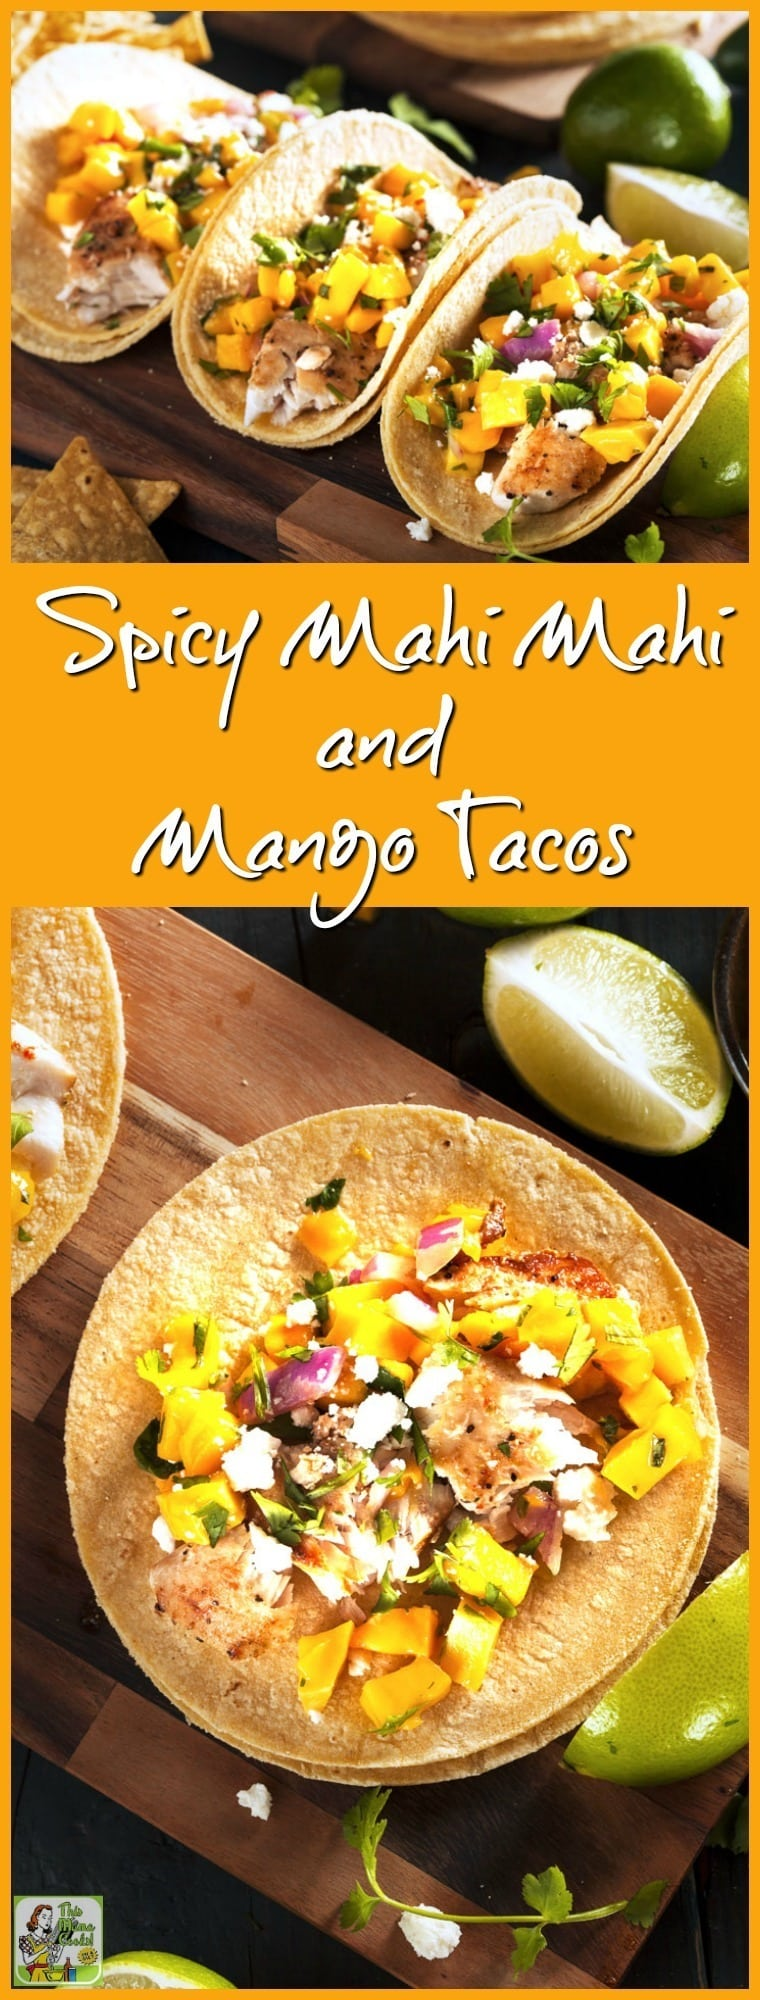 This Spicy Mahi Mahi and Mango Fish Taco recipe from Jillian Michaels  The Master Your Metabolism Cookbook is easy to make and gluten free if you serve it on corn torillas.